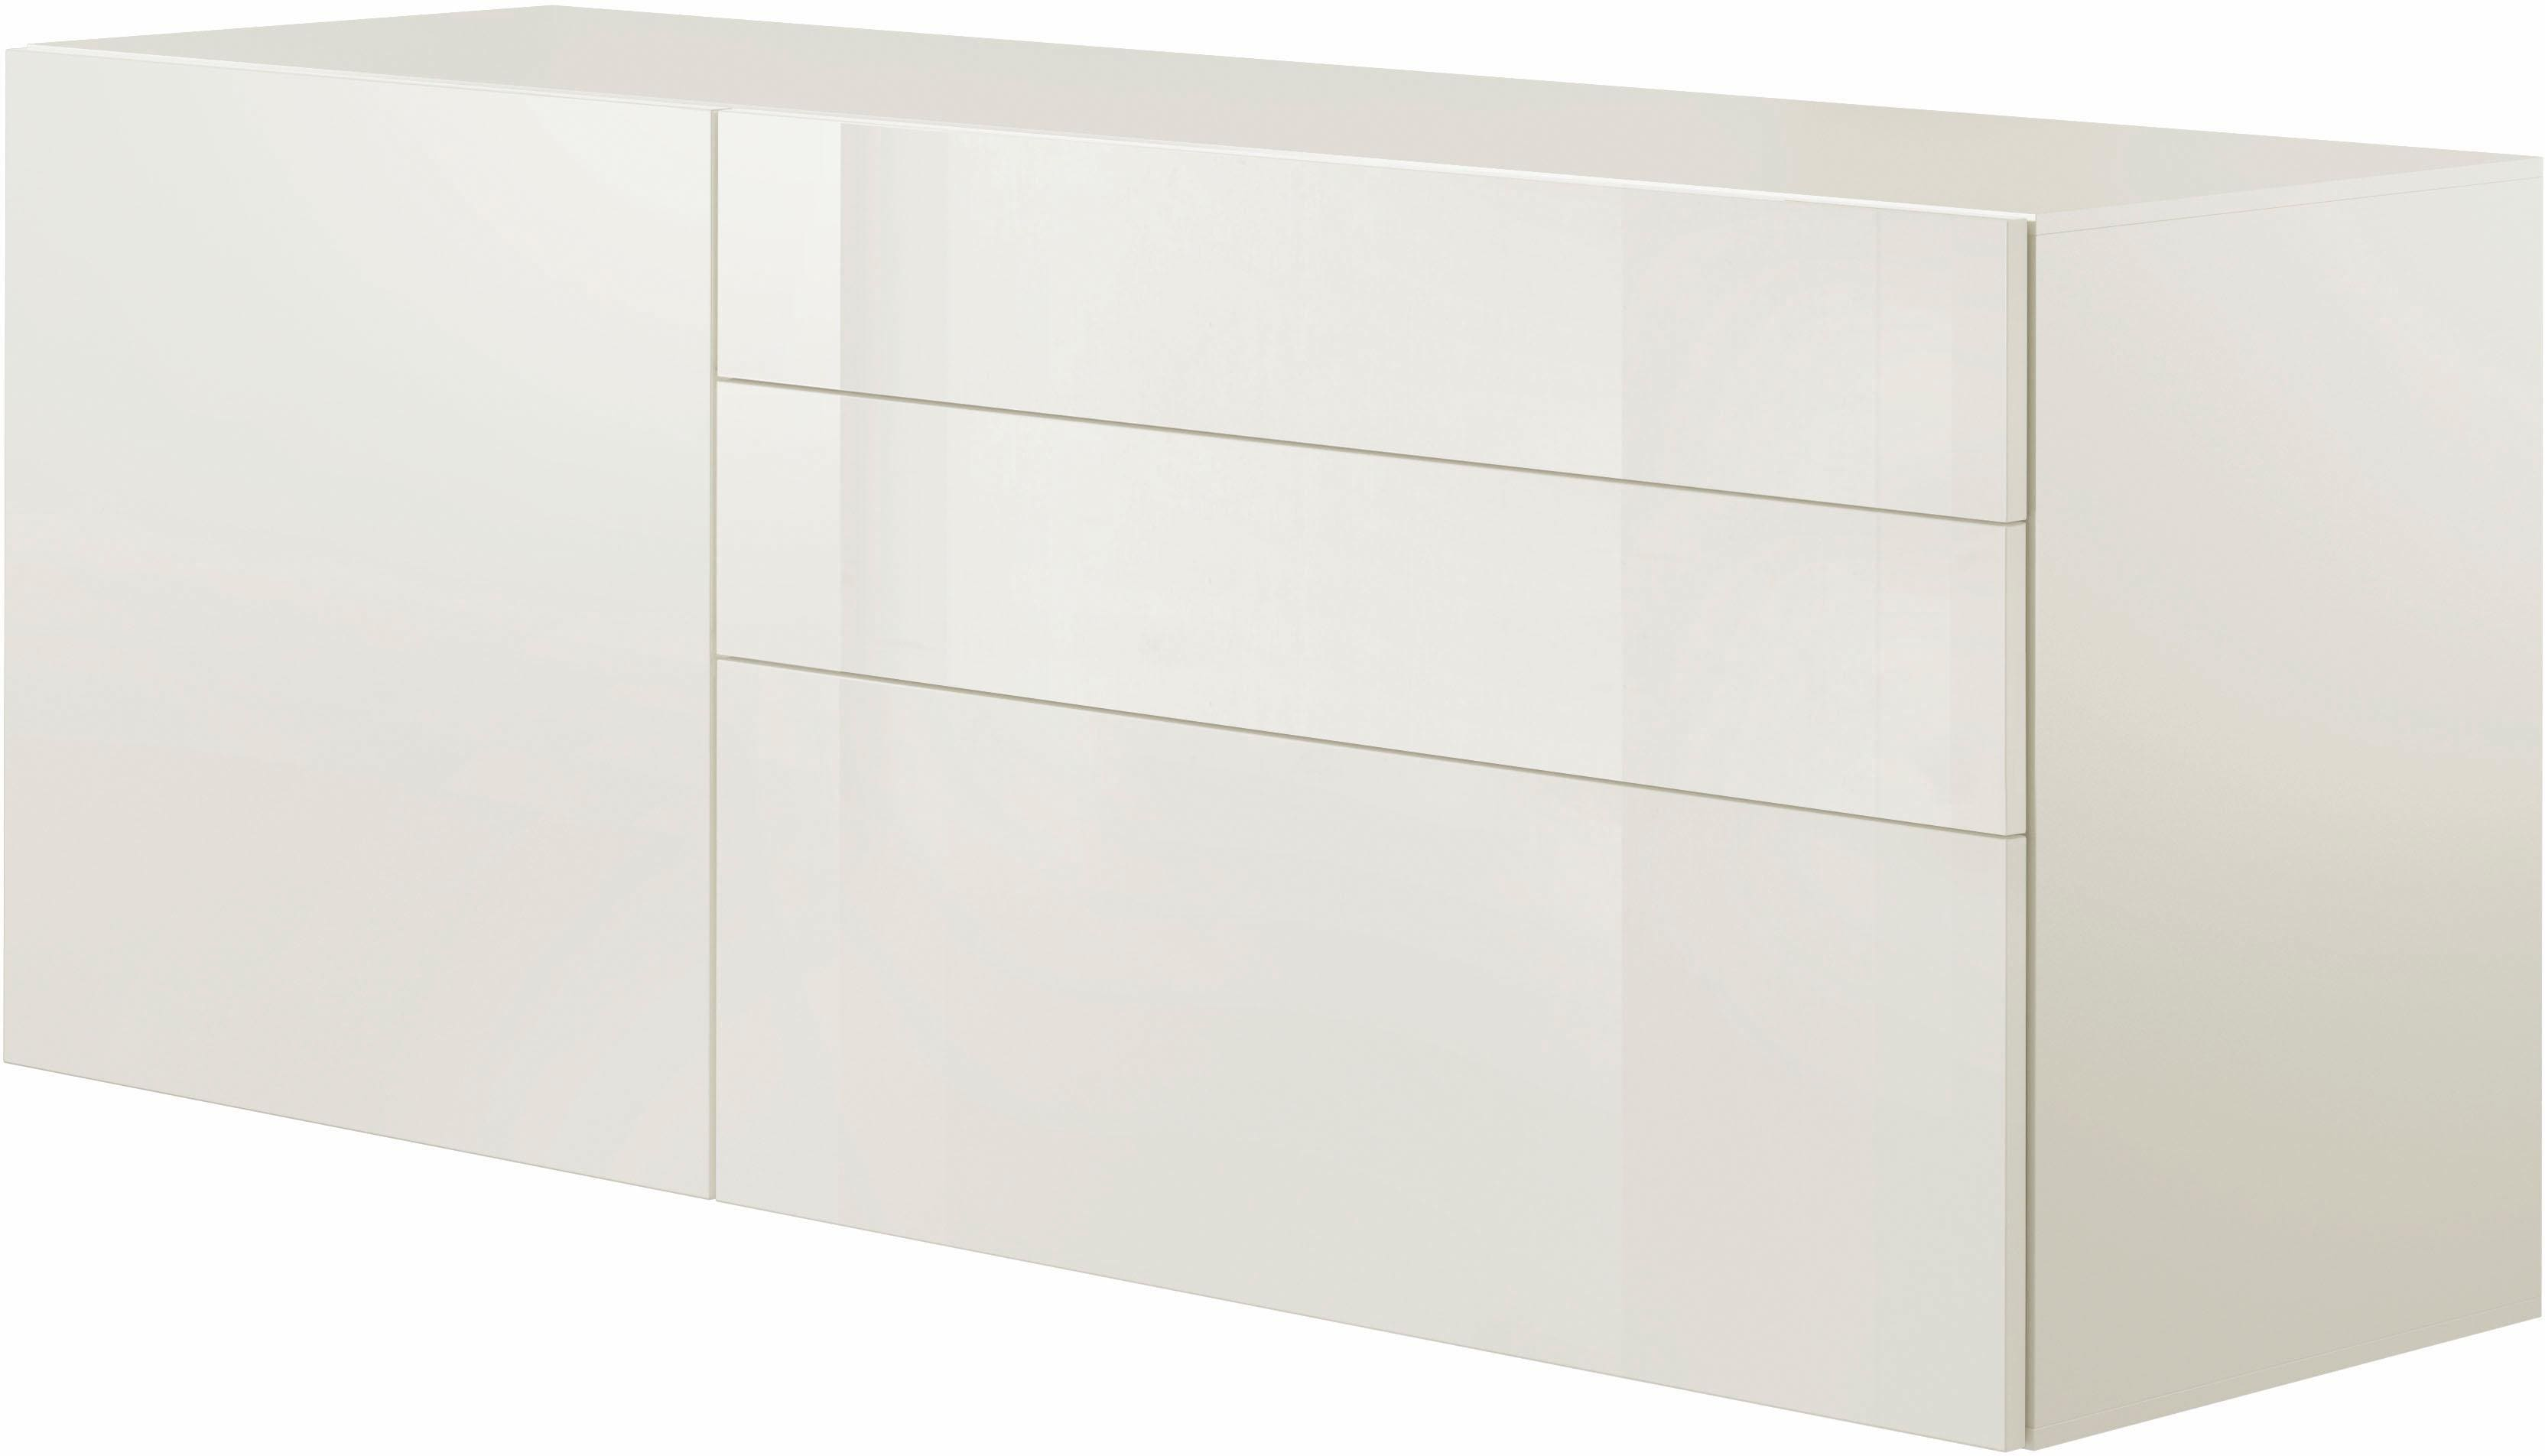 now! by hülsta Sideboard now! vision Breite 176 cm